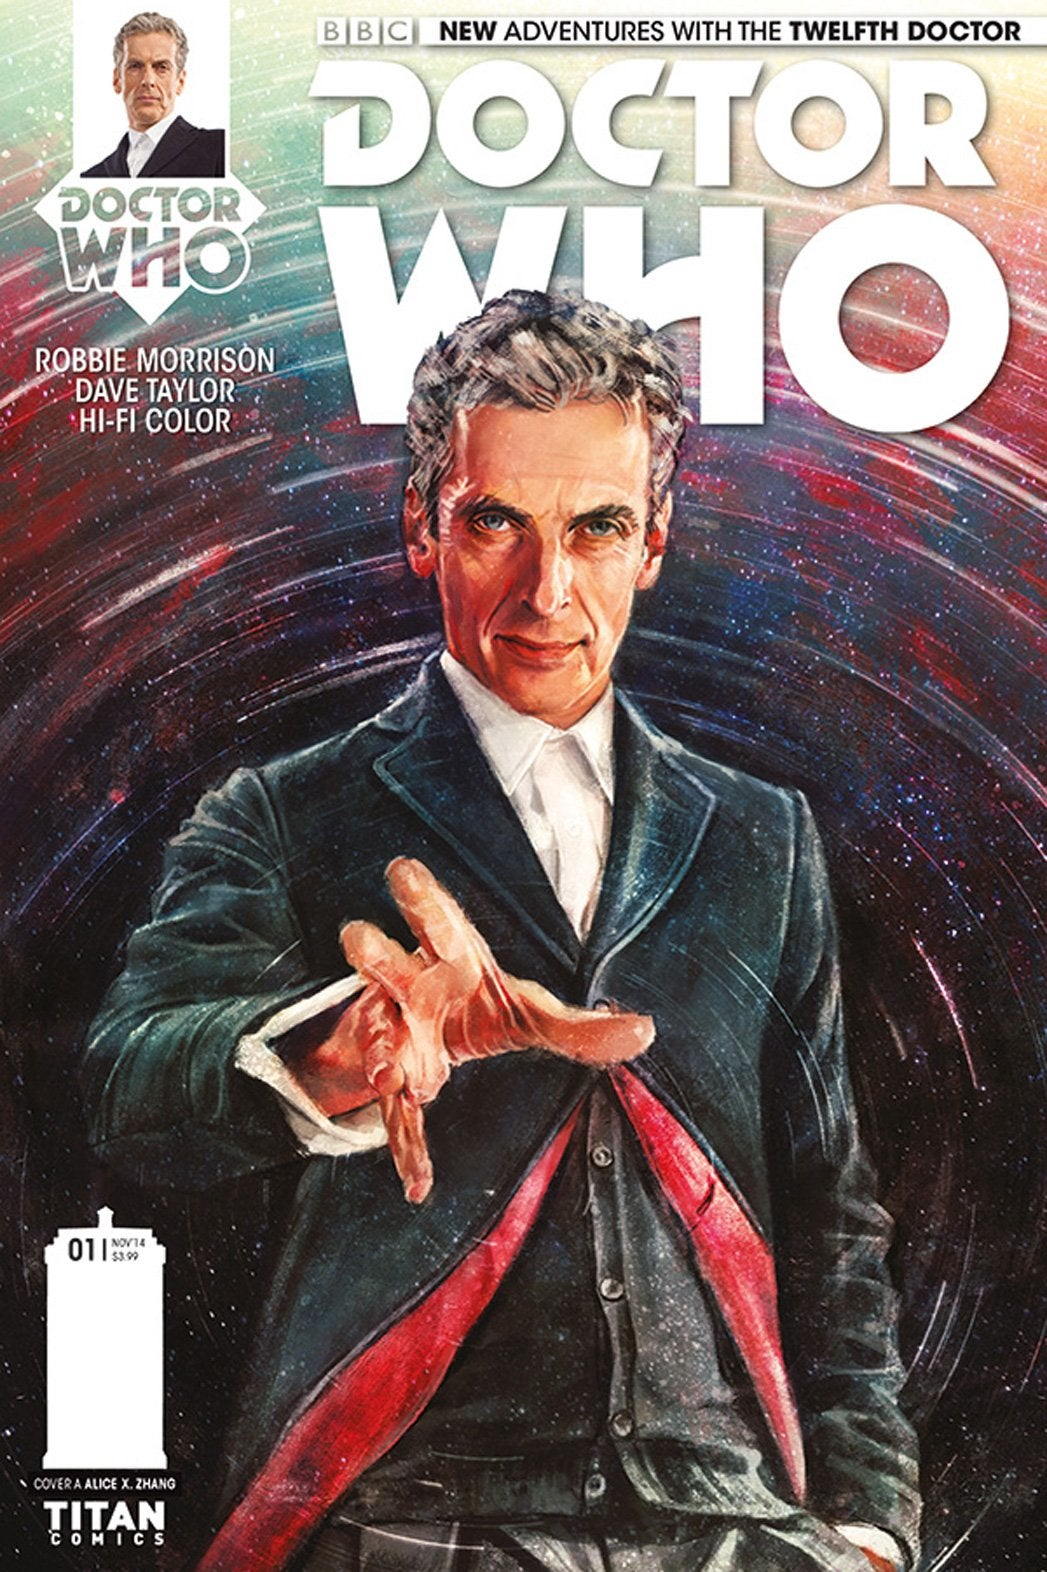 Doctor Who - The Twelfth Doctor 1 - Cover